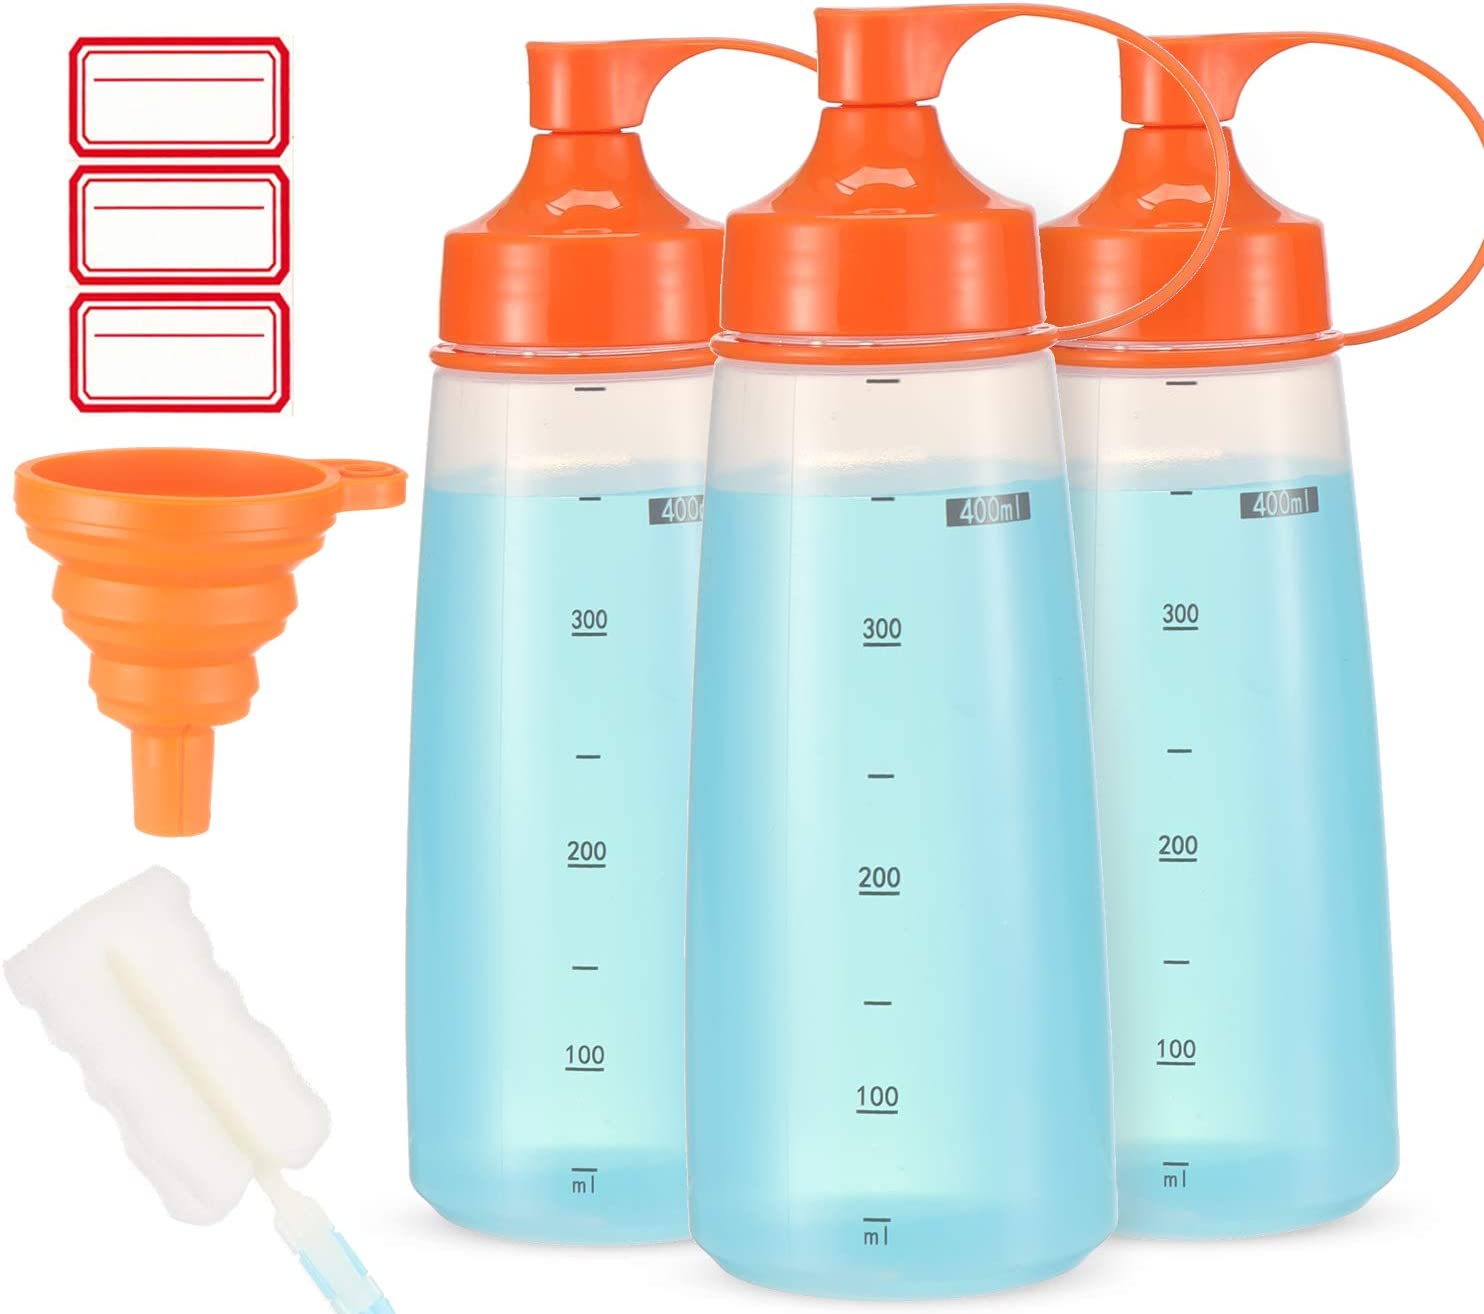 Condiment Squeeze Bottle Wide Mouth, Ondiomn 3 Pack 400ml Empty Reusable Squeeze Bottles for Honey,Batter,Catsup,Onion,Resin,Baking,Expoxy,Relish, BPA Free-Food Grade